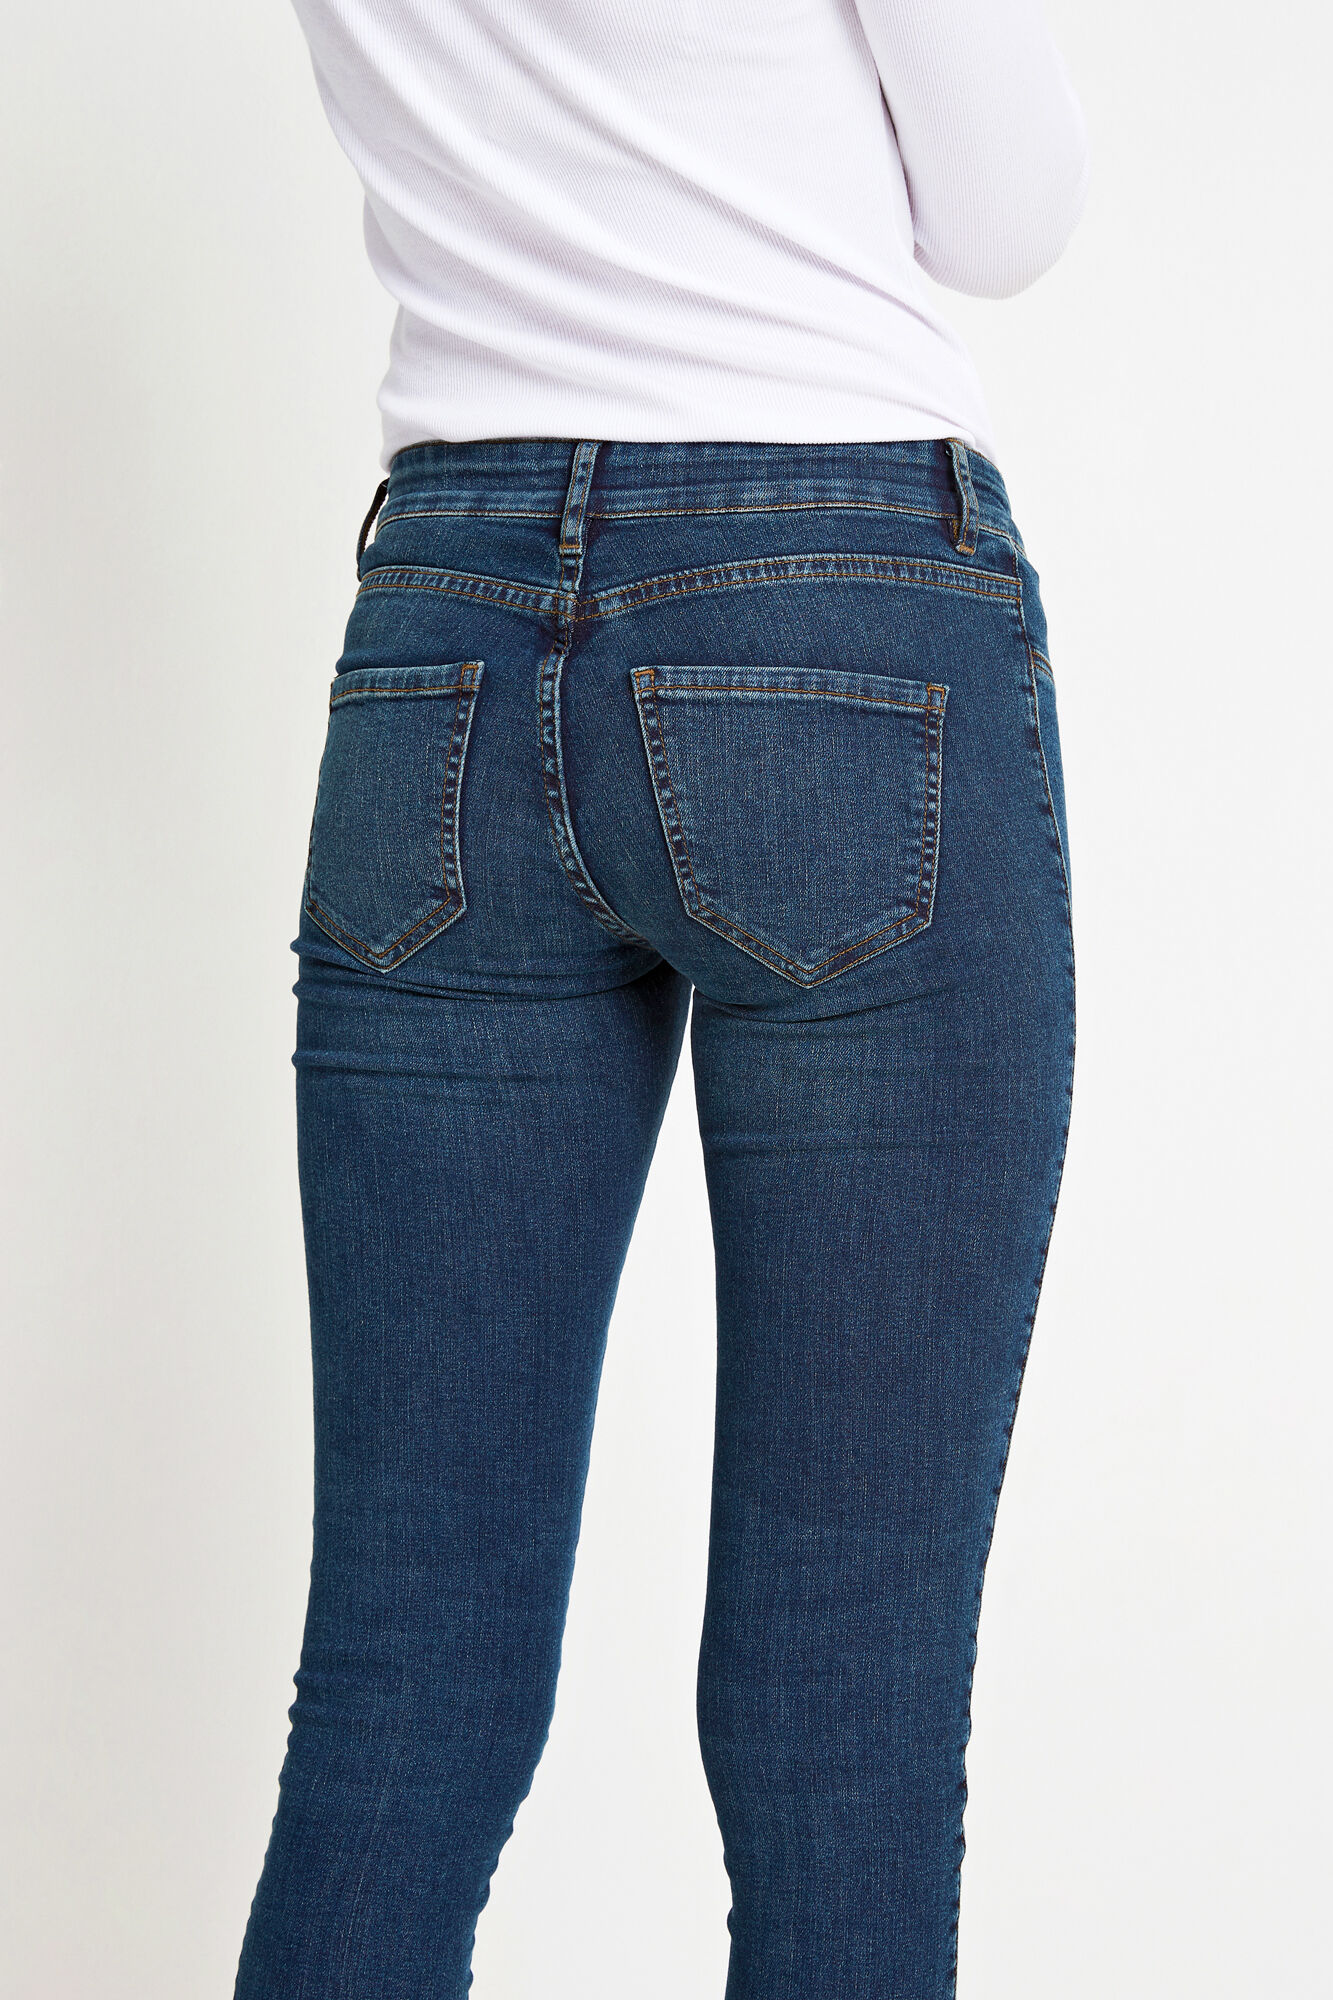 ENBLAIR JEANS WORN BLUE 6403, WORN BLUE